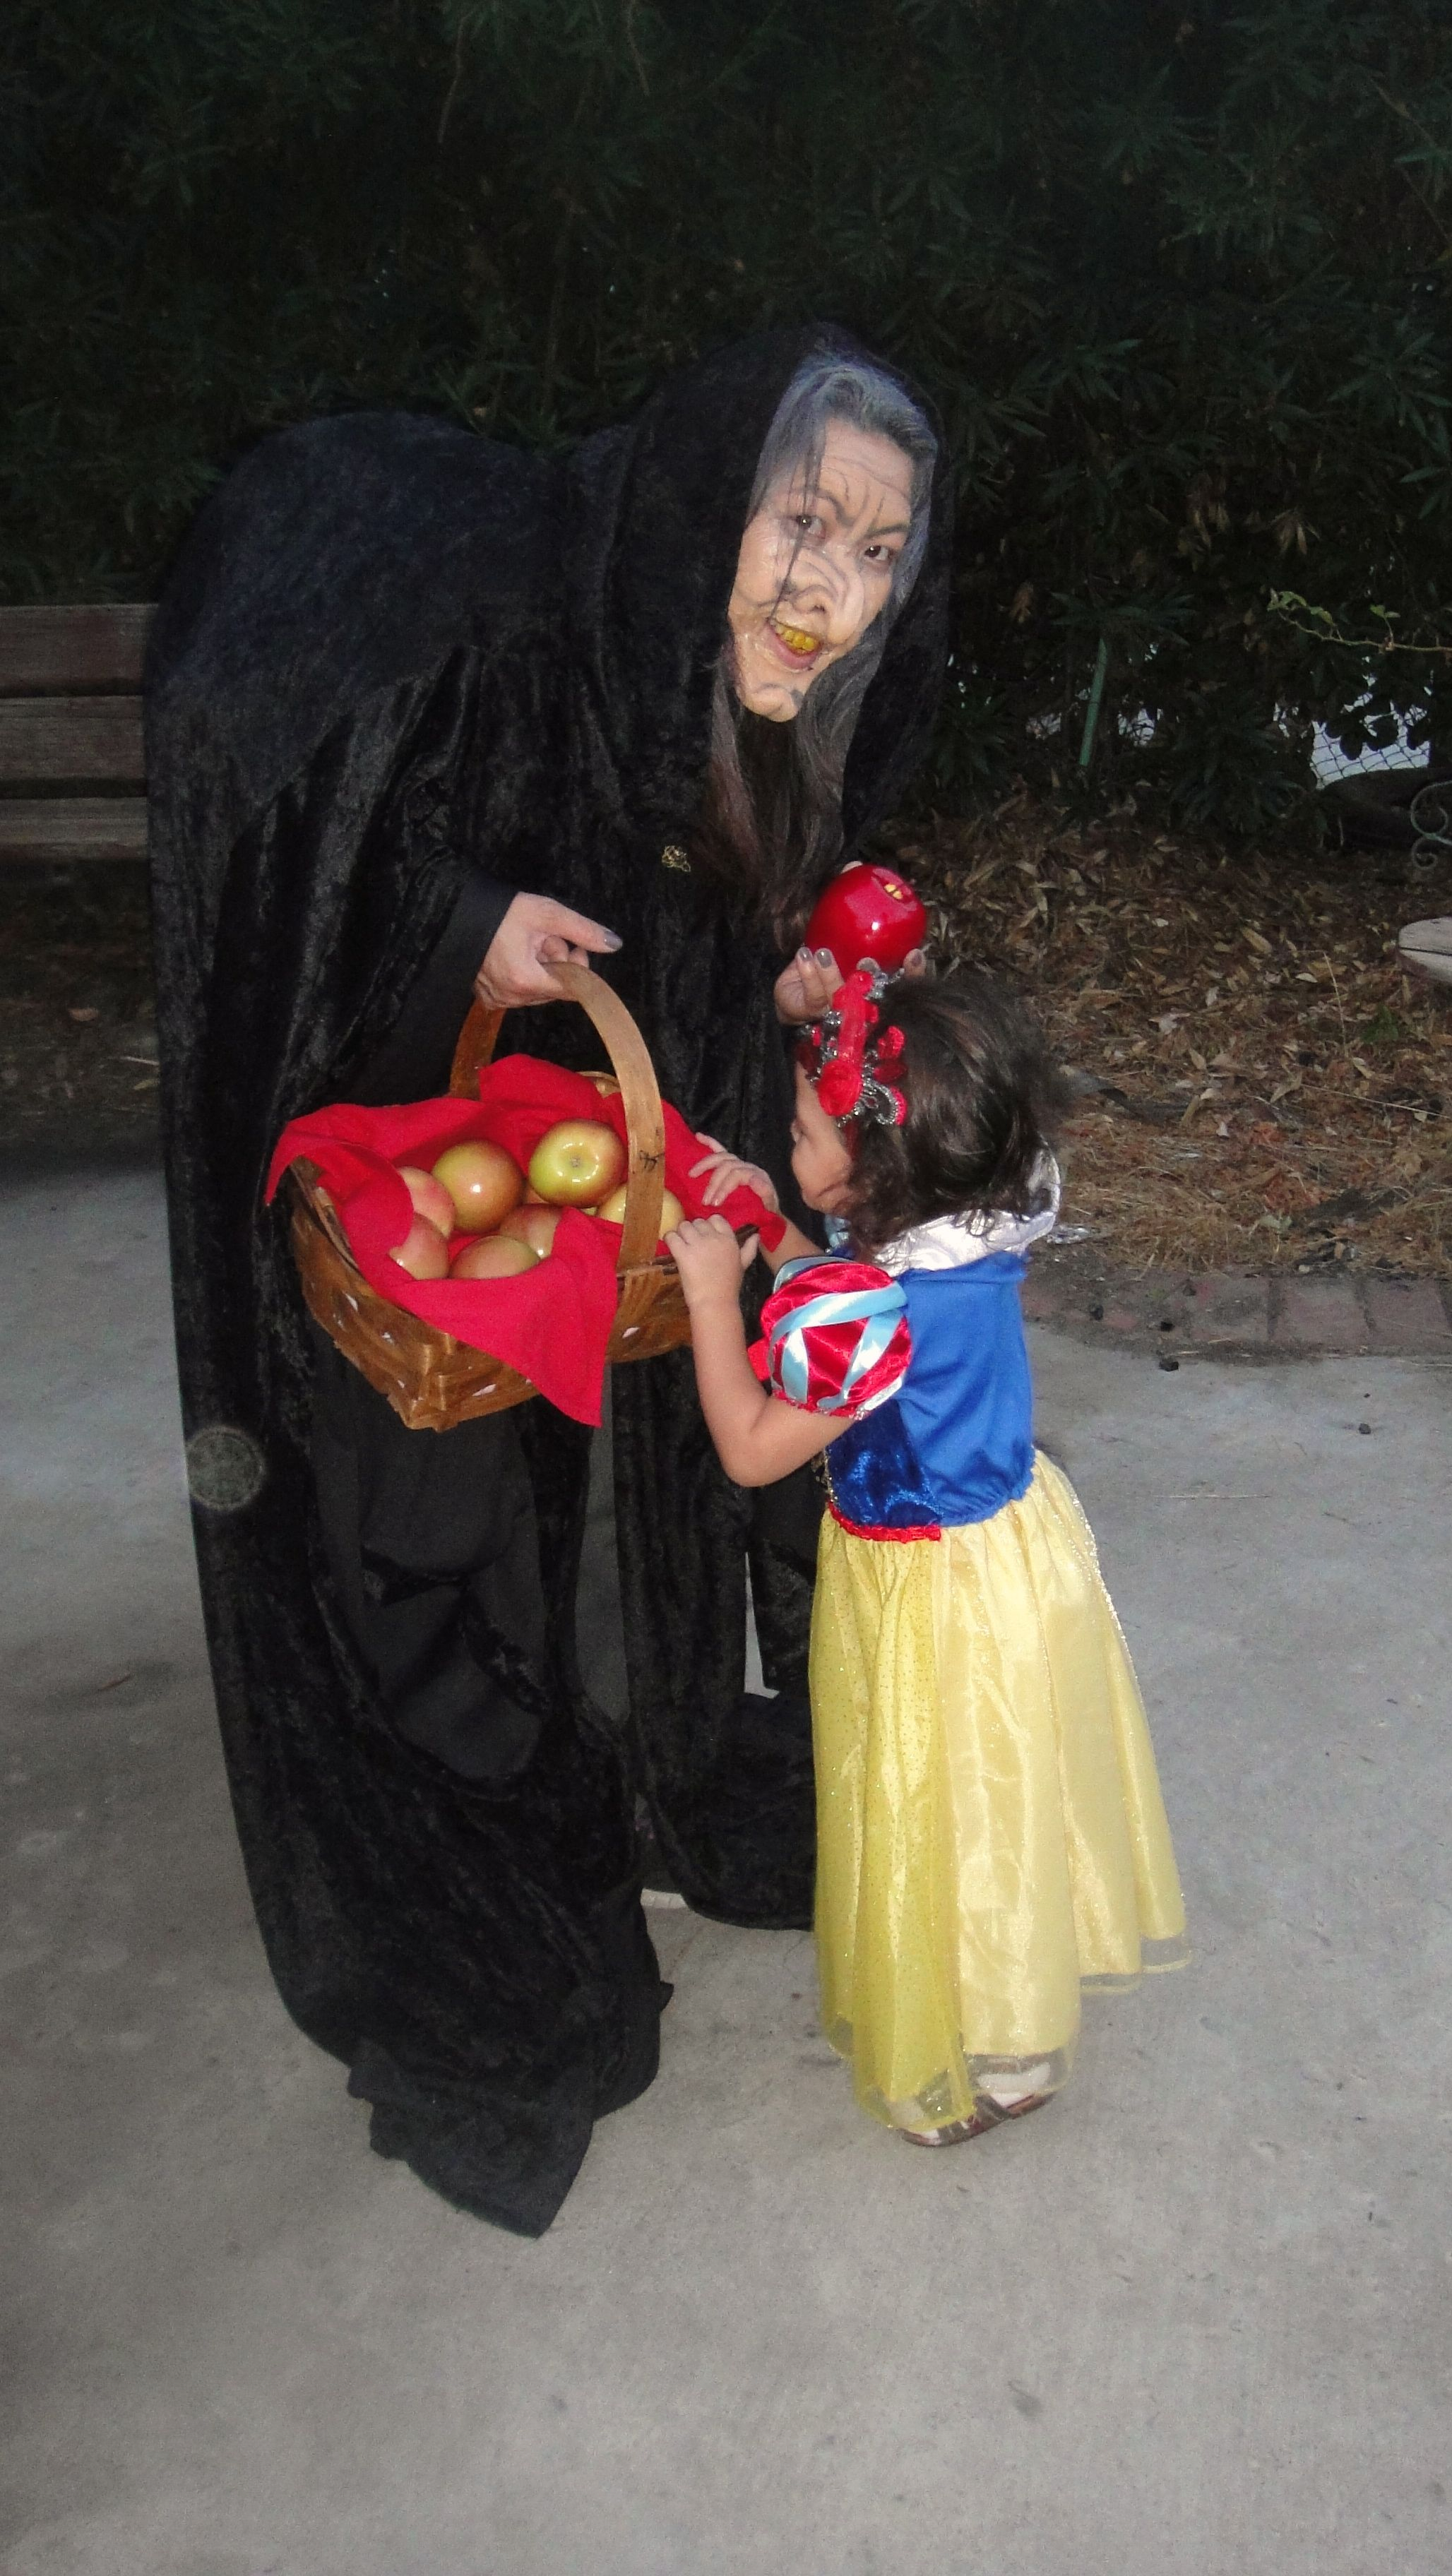 Snow White and the Evil Queen/Witch Costume | Costumes | Pinterest ...